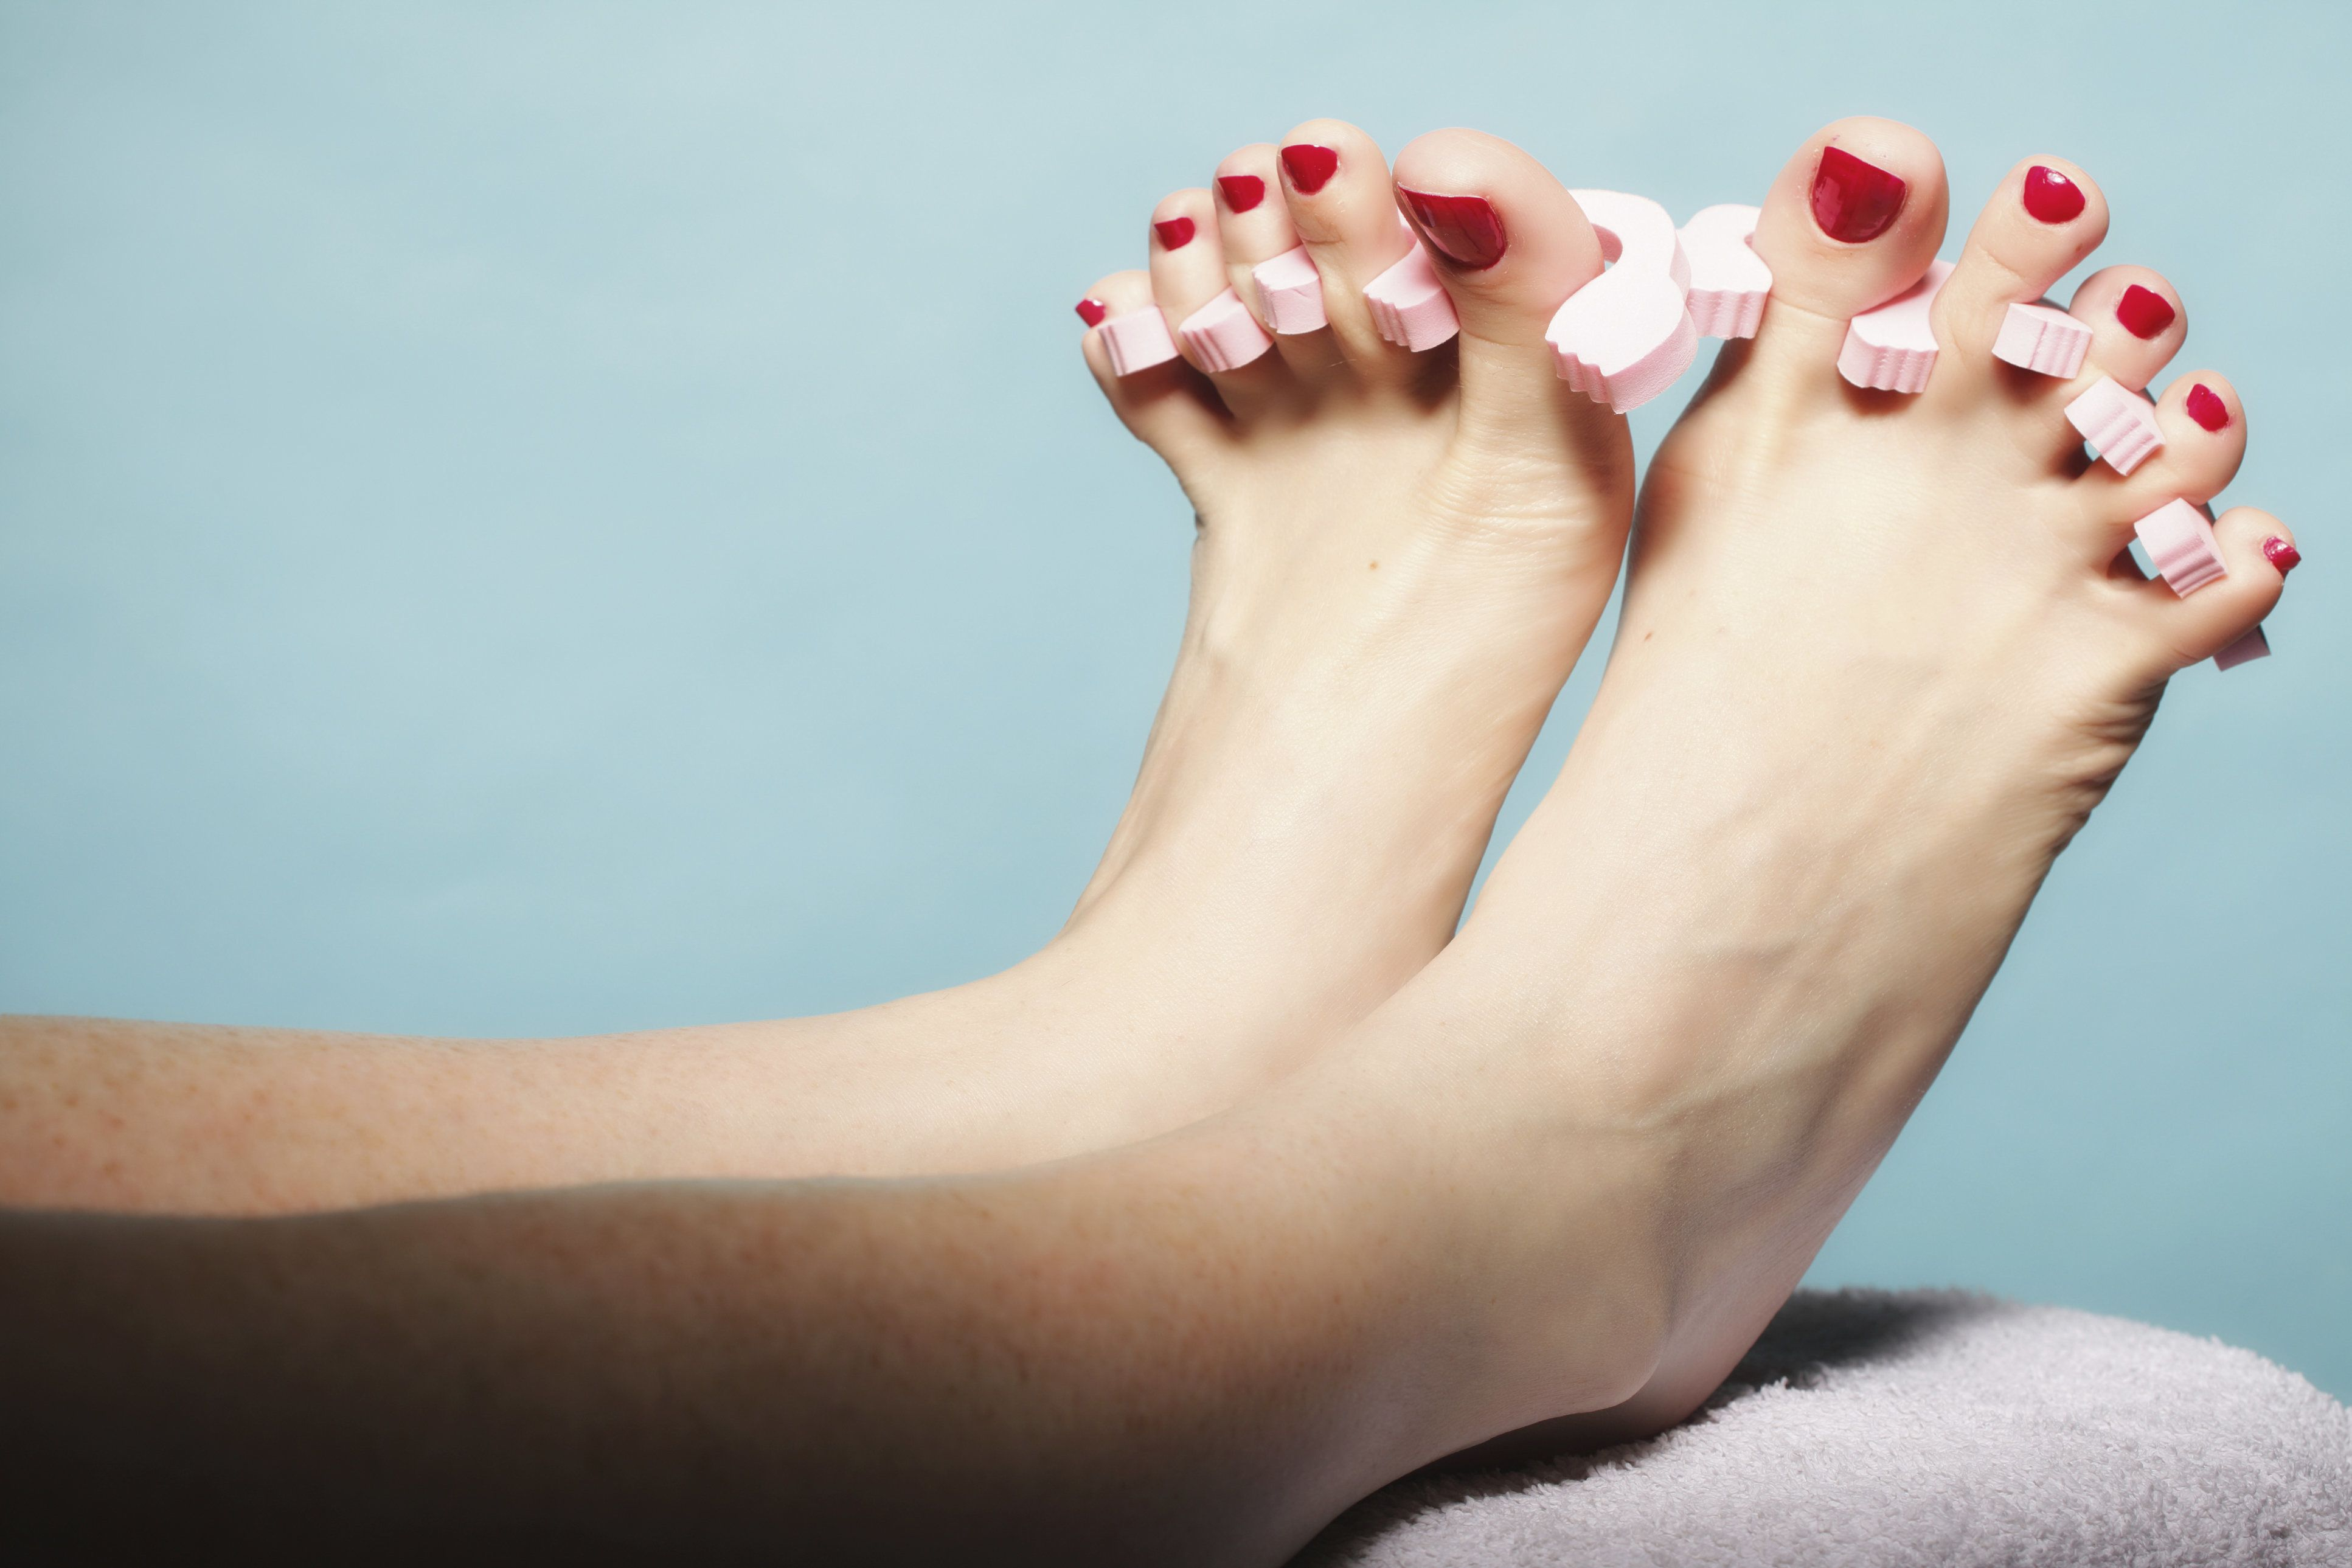 foot pedicure applying woman's feet with red toenails in pink toe separators blue background